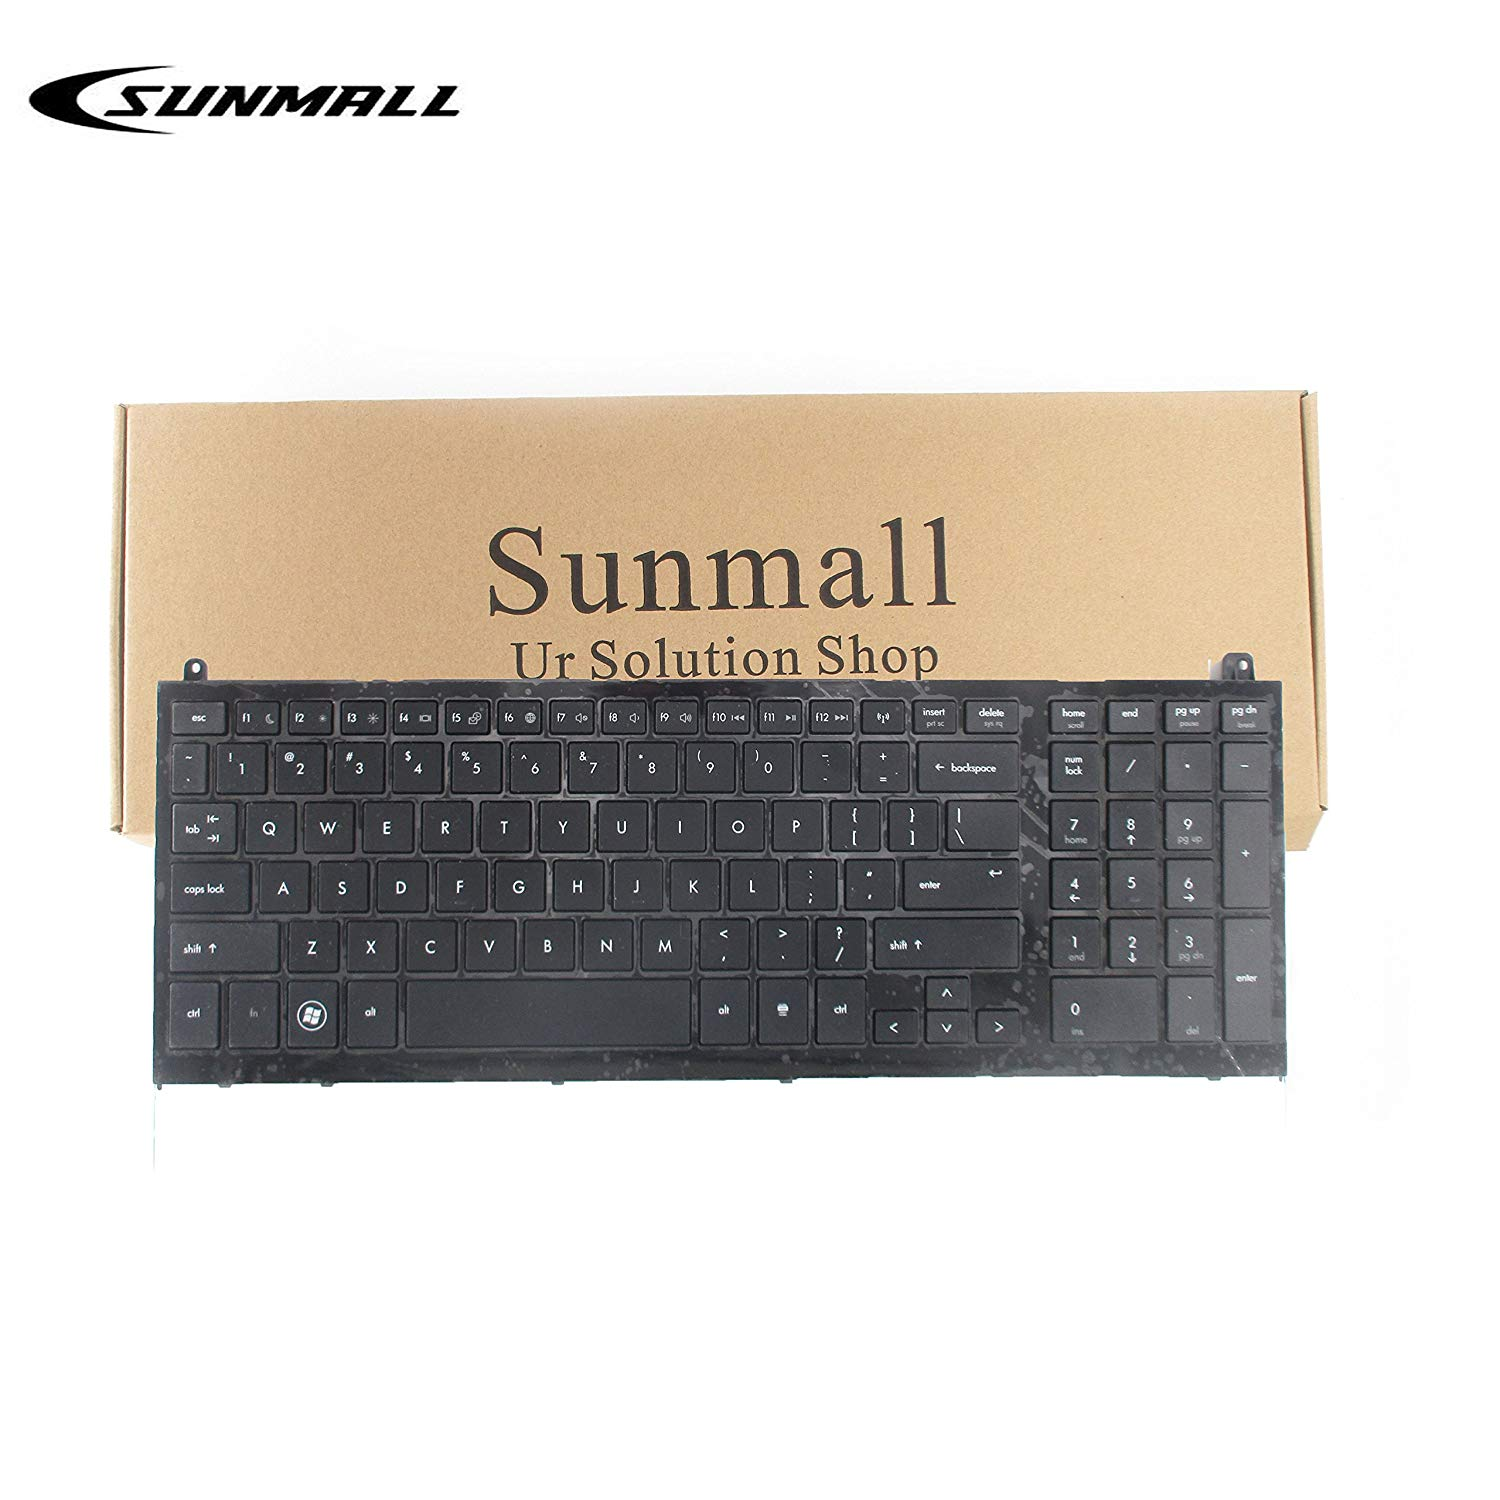 SUNMALL Keyboard Replacement with Frame for hp probook 4520s 4525s Series Laptop Black US Layout(6 Months Warranty)